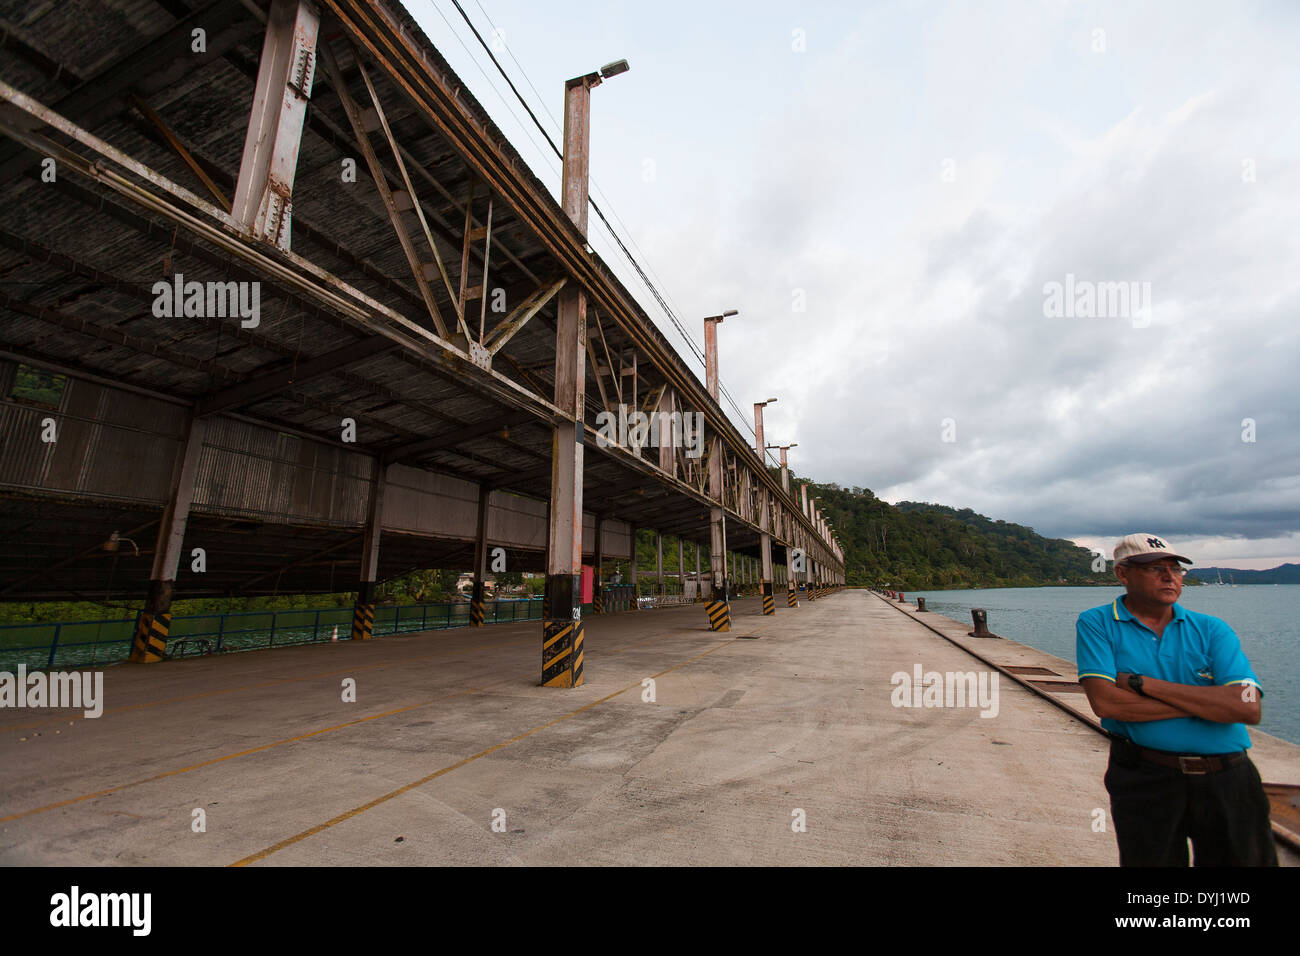 A Costa Rican man stands with his arms folded on the commercial dock at the port of Golfito in the southern zone of Costa Rica - Stock Image